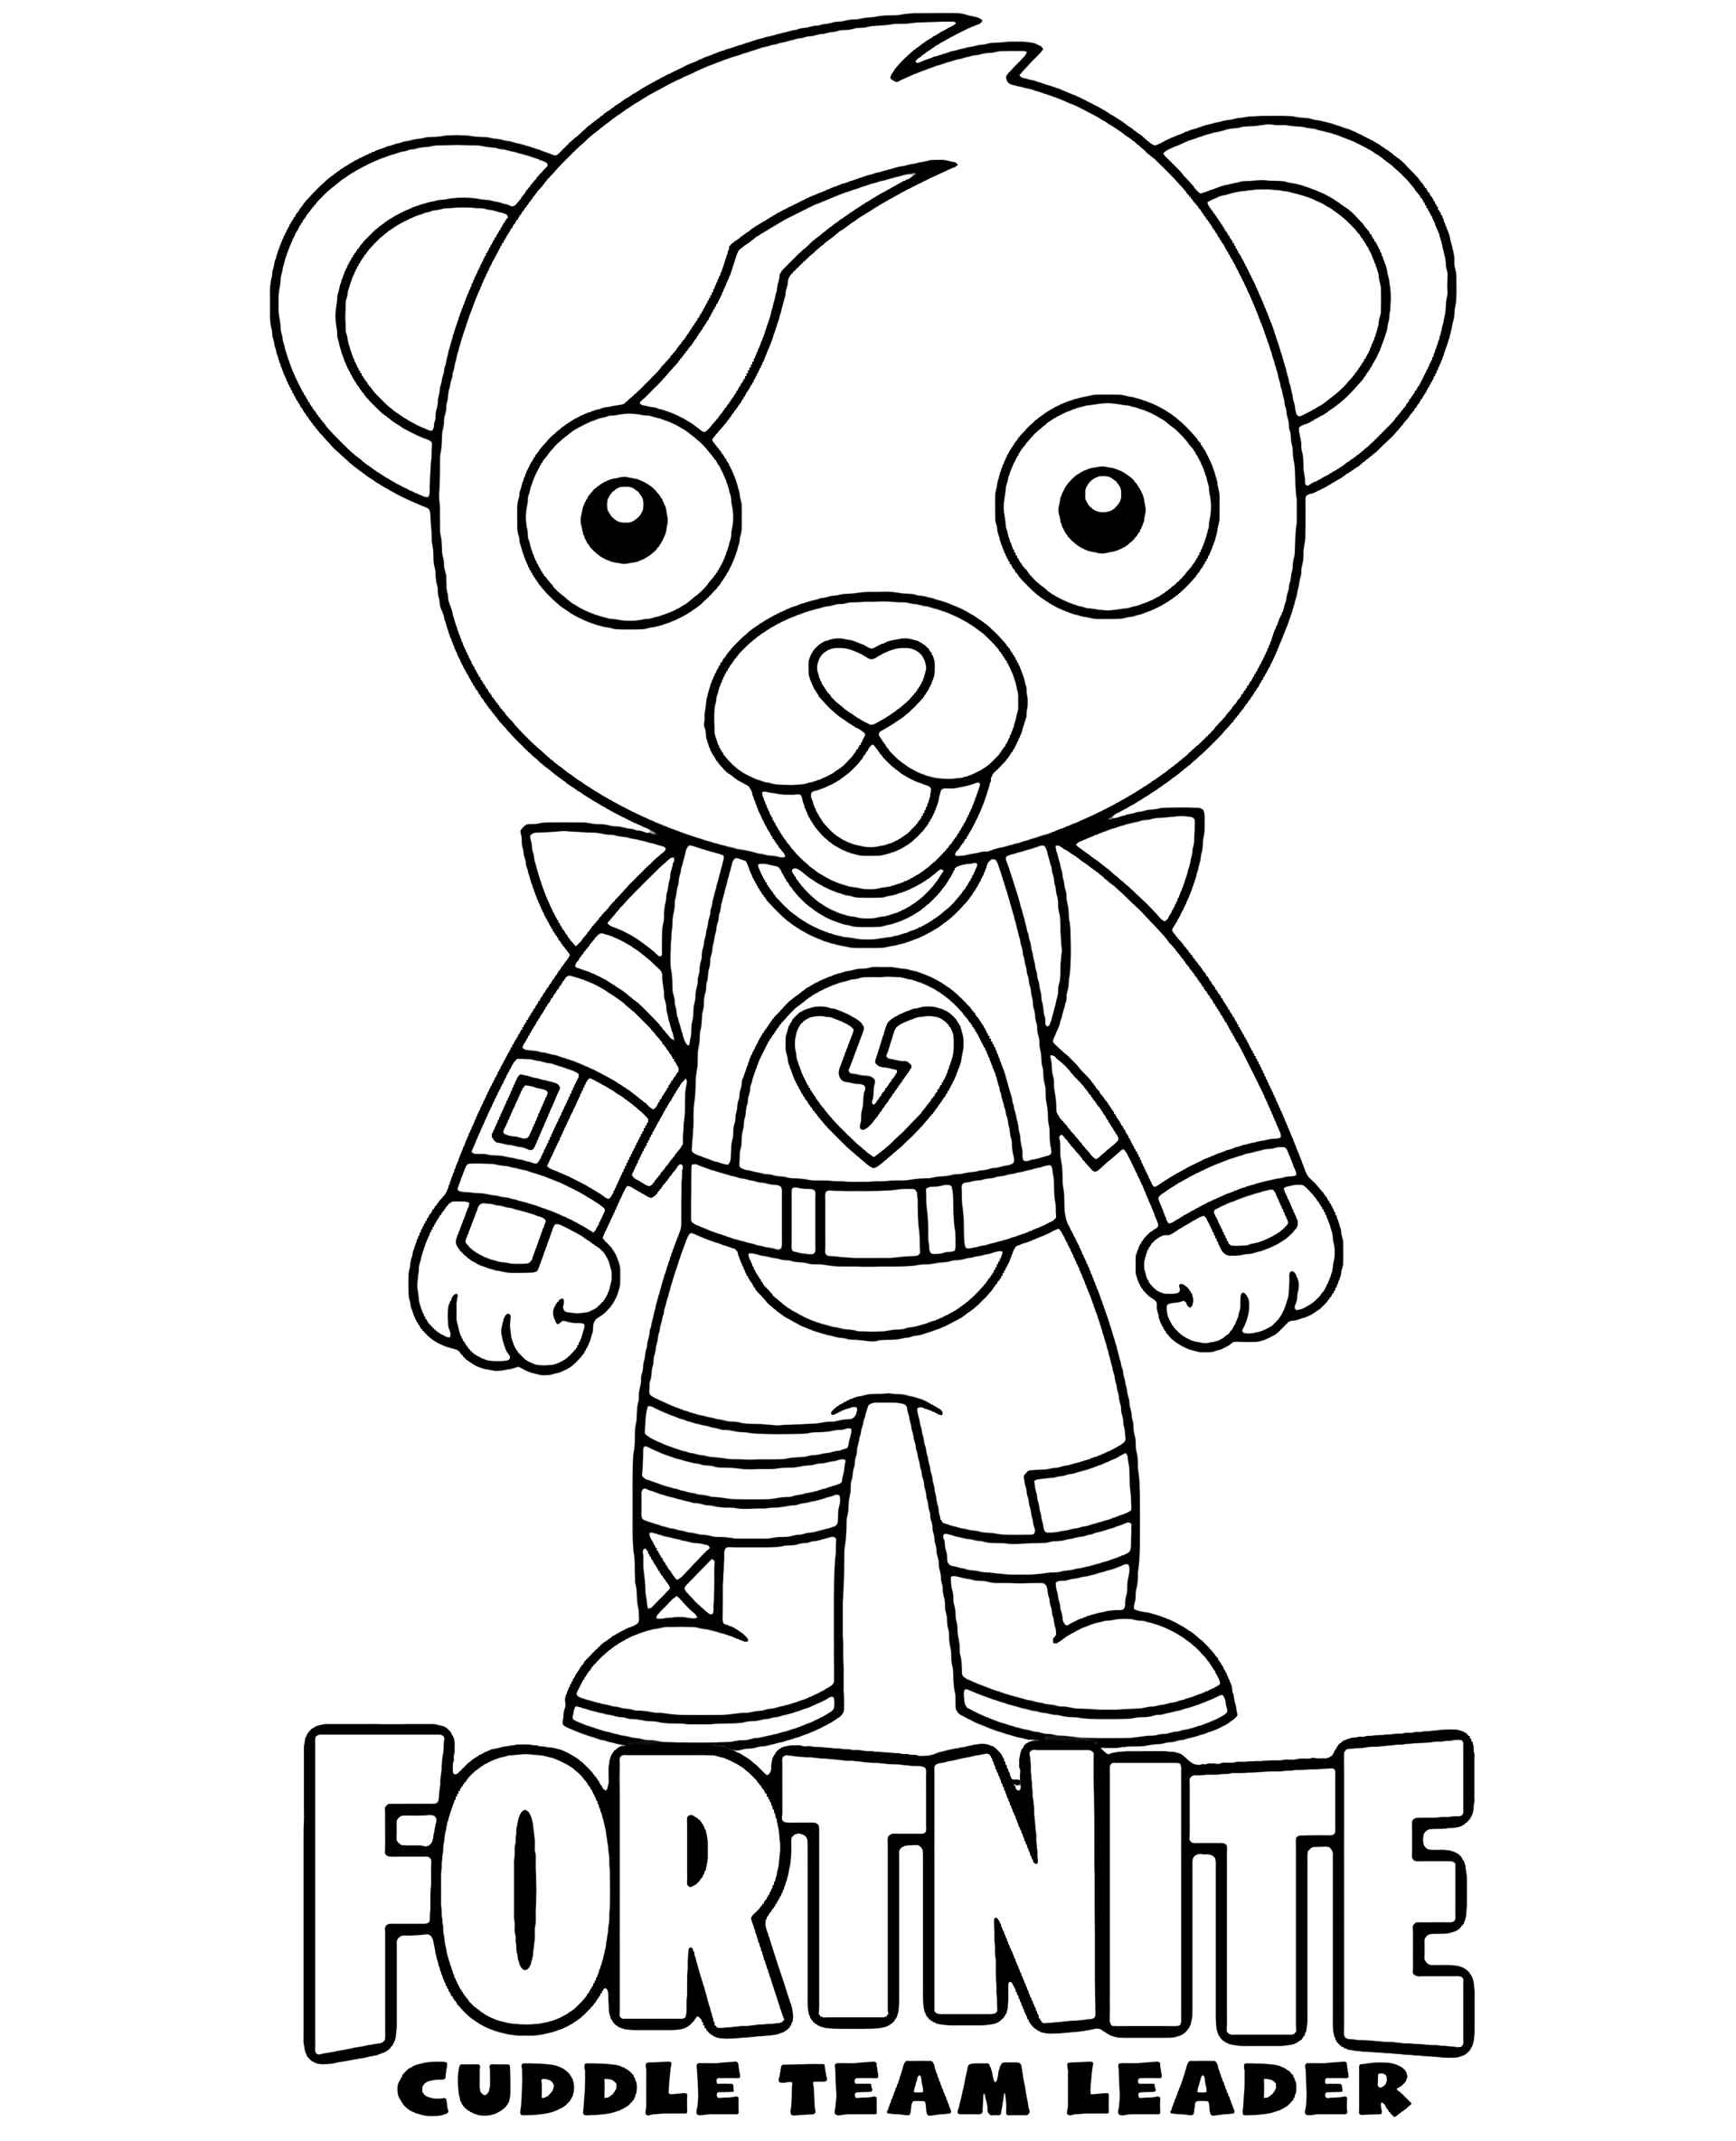 Coloring Page The Cuddle Team Leader Chibi Skin From The Game Fortnite